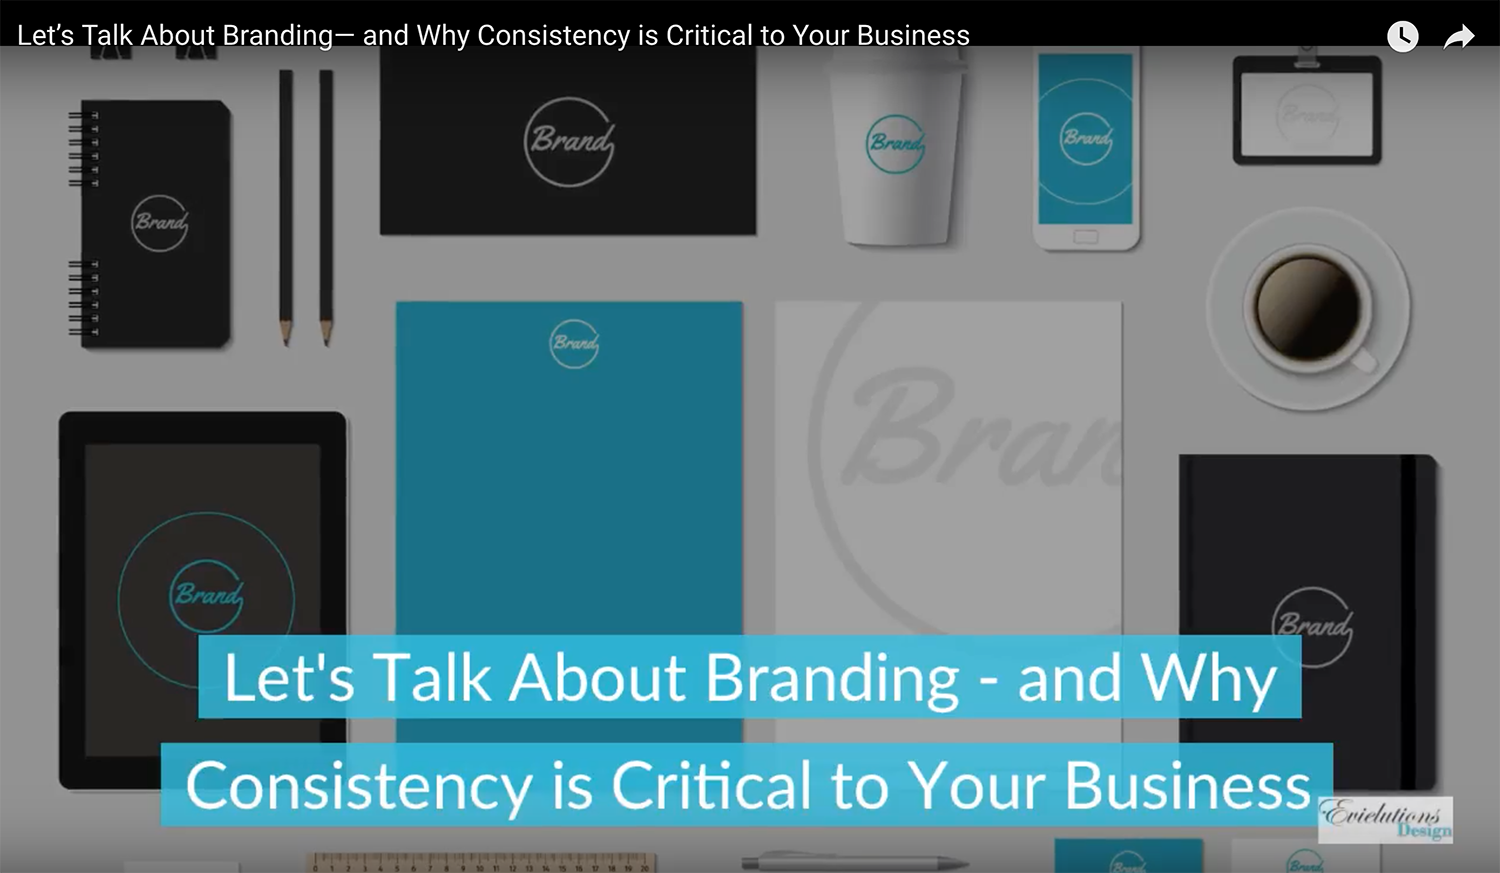 Let's Talk About Branding